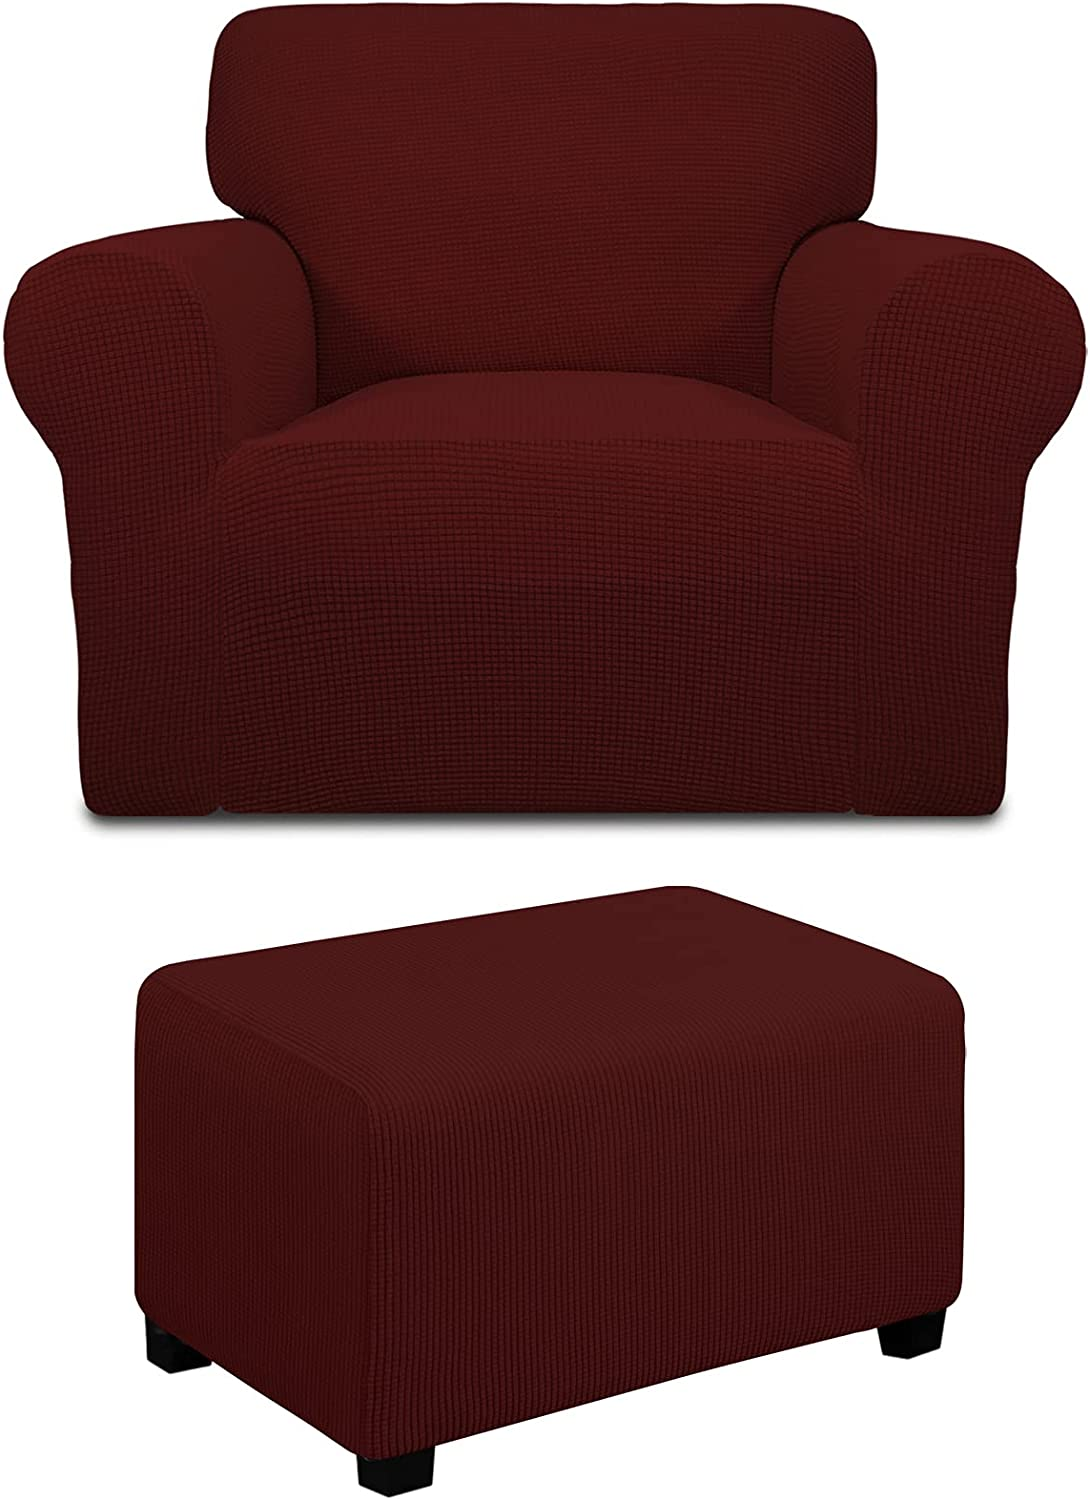 Ranking integrated 1st place Easy-Going Ottoman S Chair Bundles Outlet ☆ Free Shipping slipcover